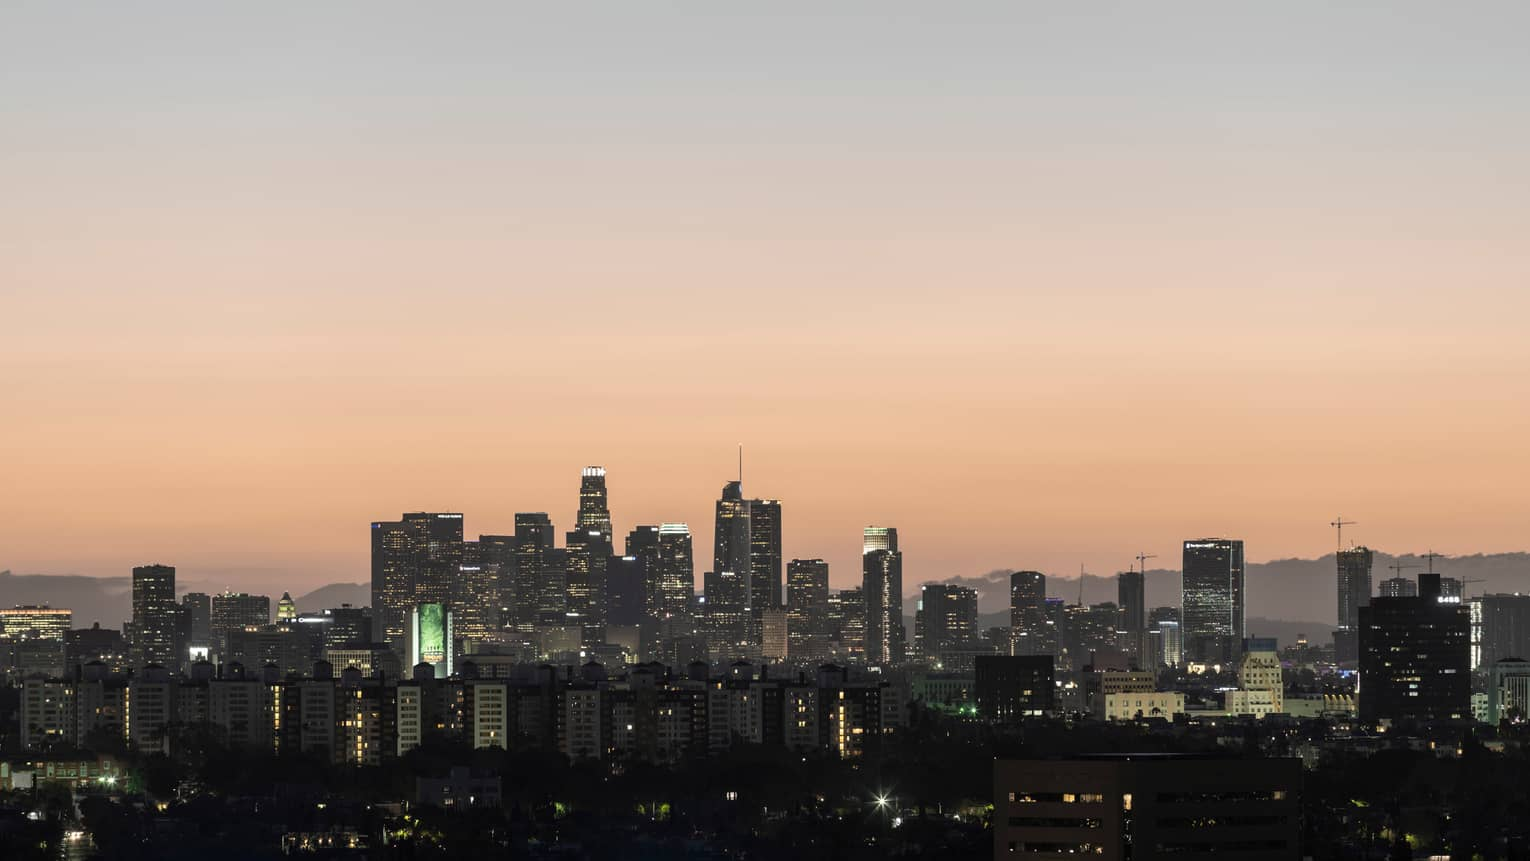 Los Angeles buildings, city skyline at sunset